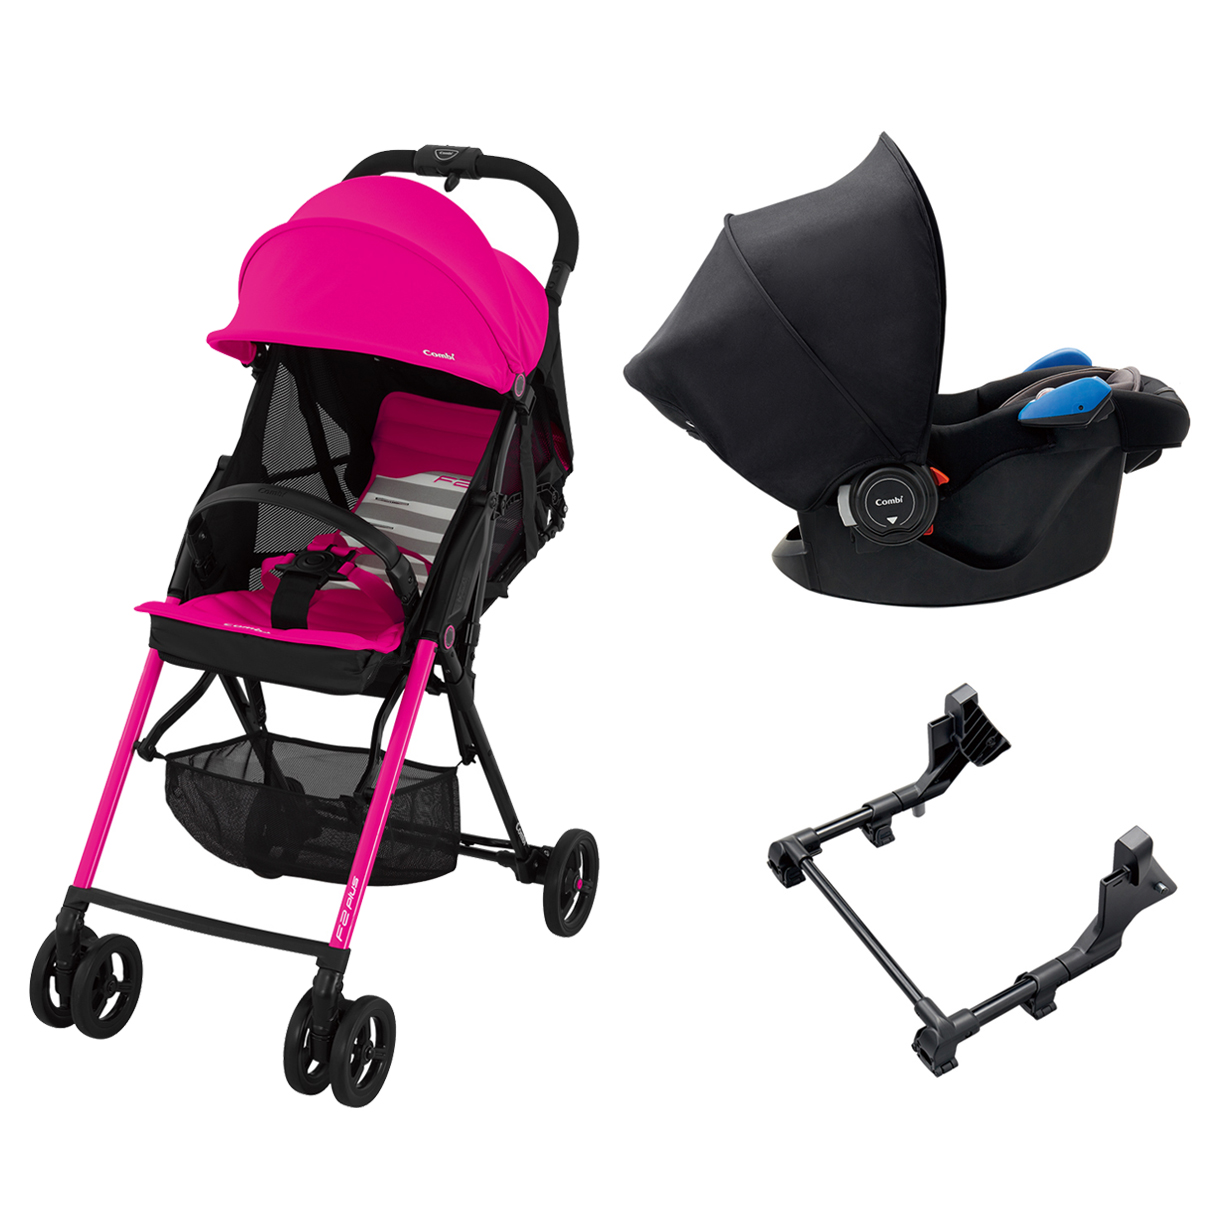 Newborn Car Seat And Stroller Set Aprica Japan Combi Buggy F2plus Af F2 Travel System